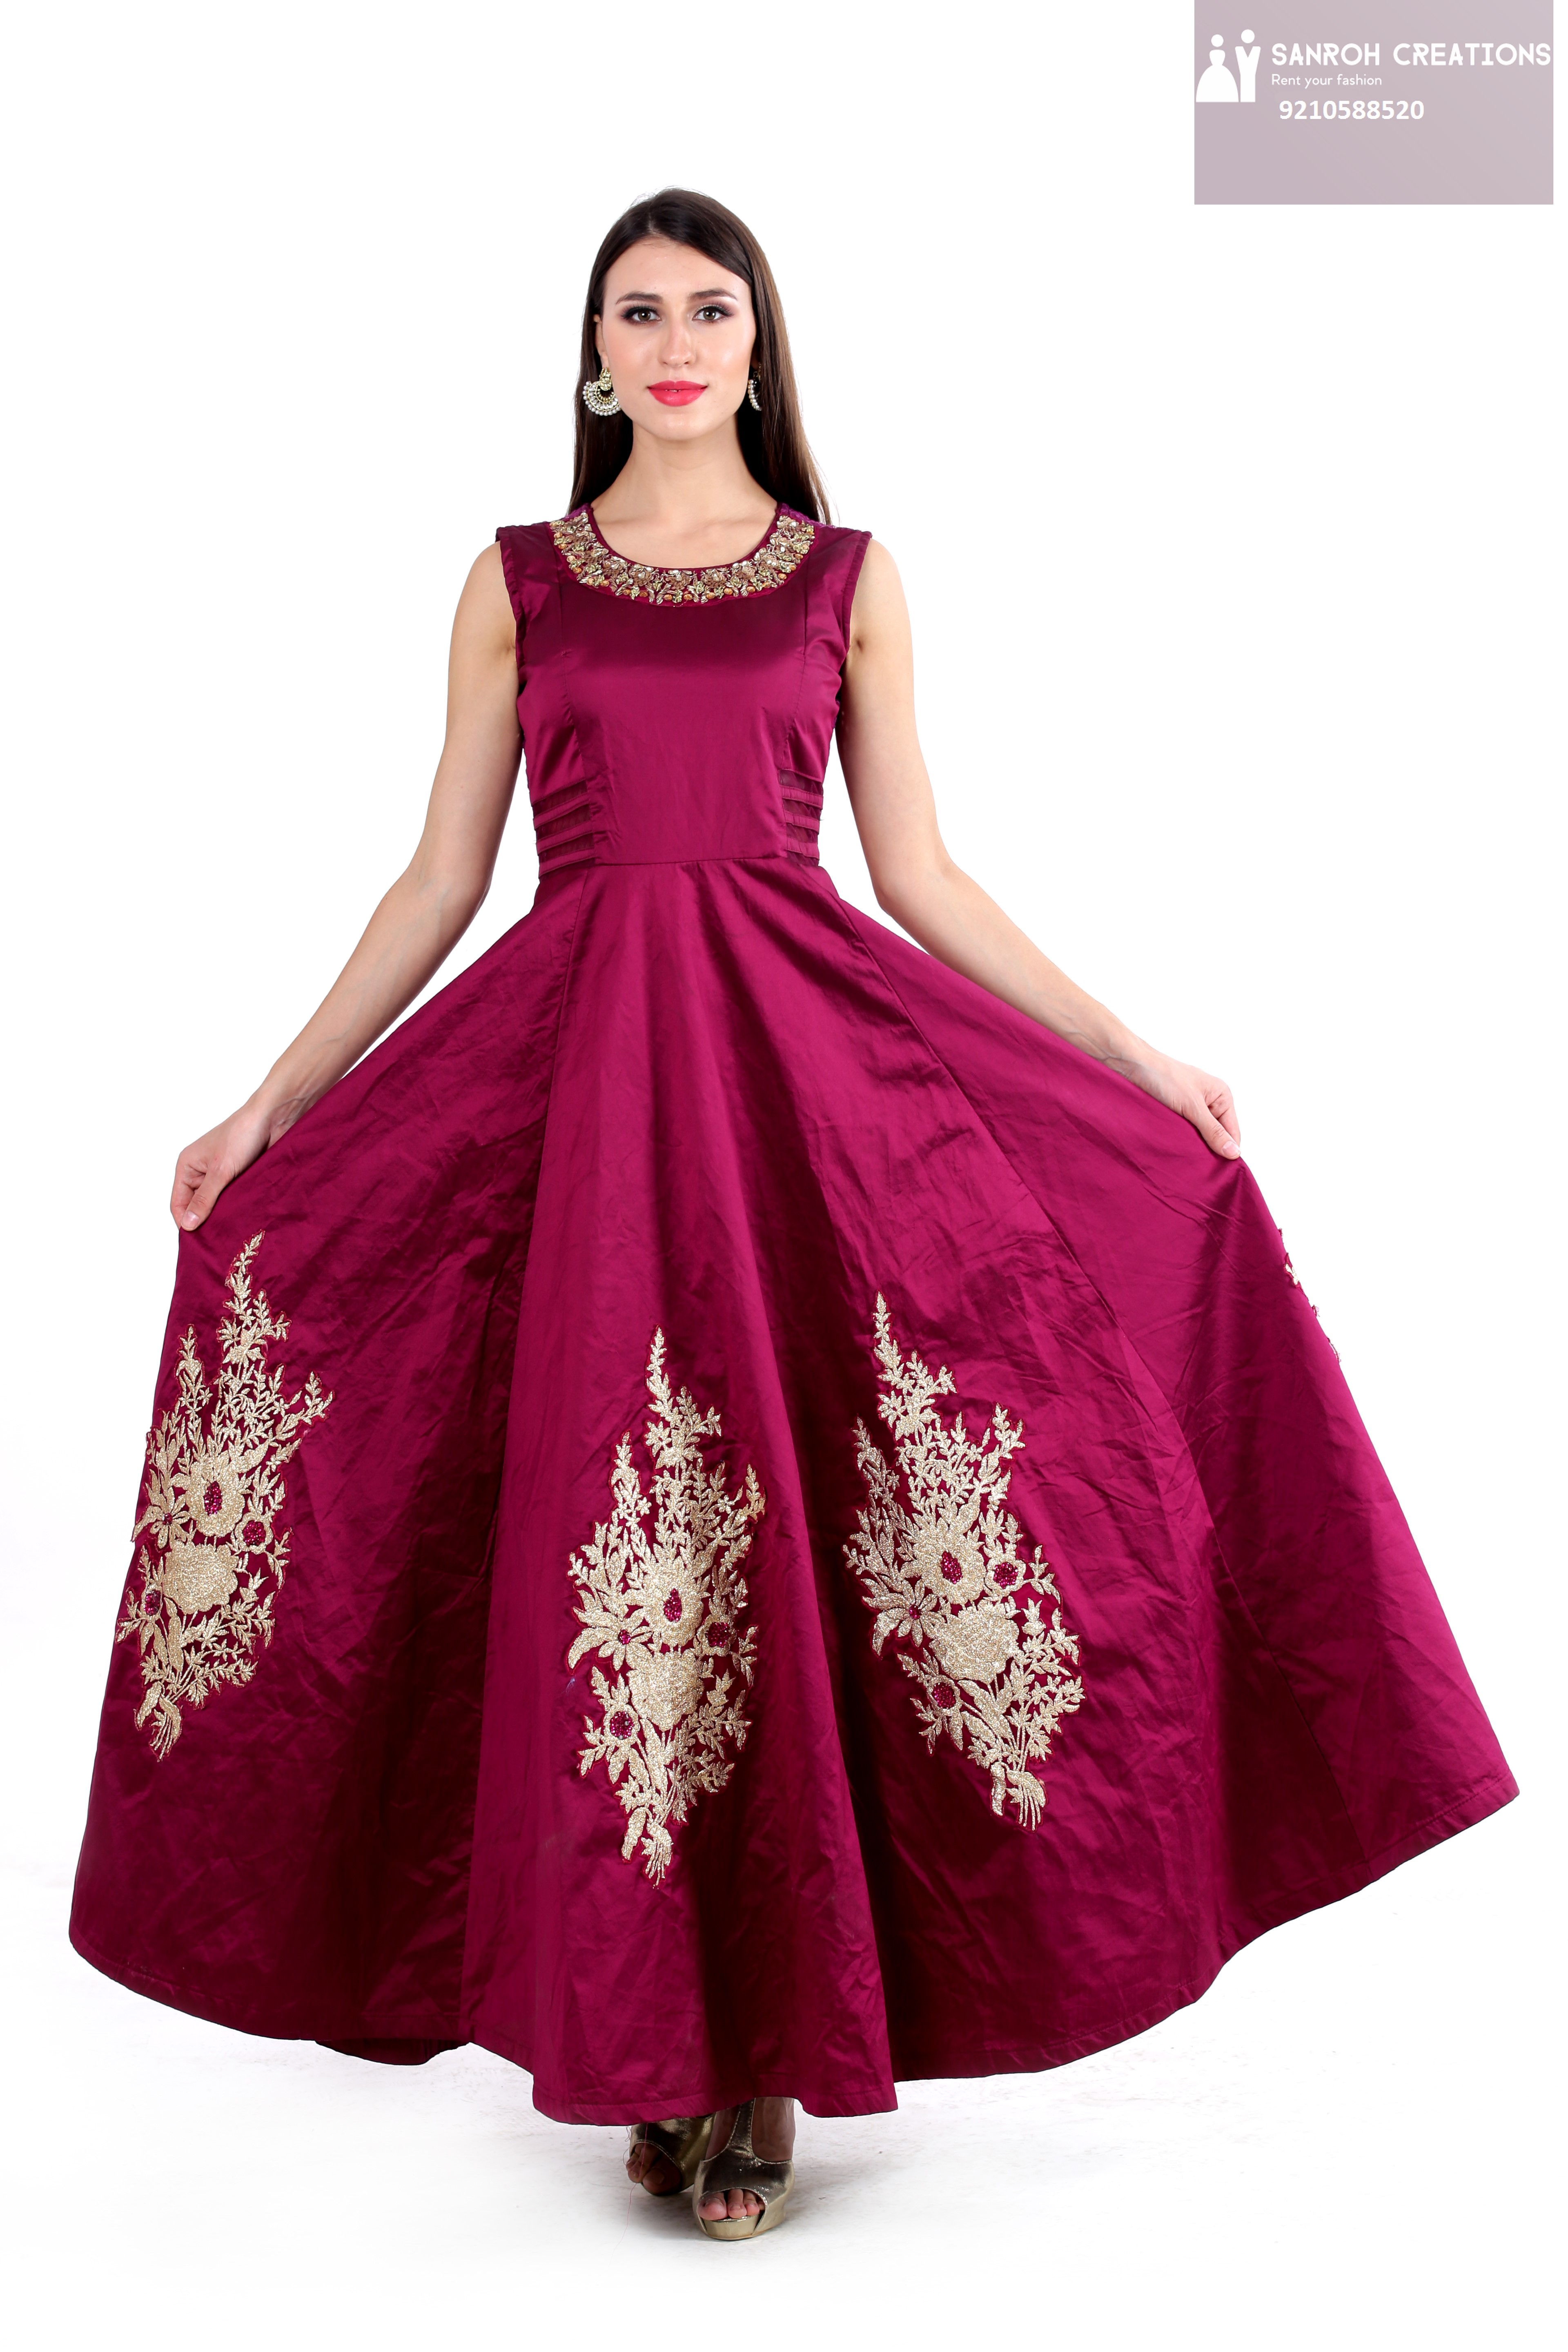 dresses for girls on rent in Gurgaon Sector 14